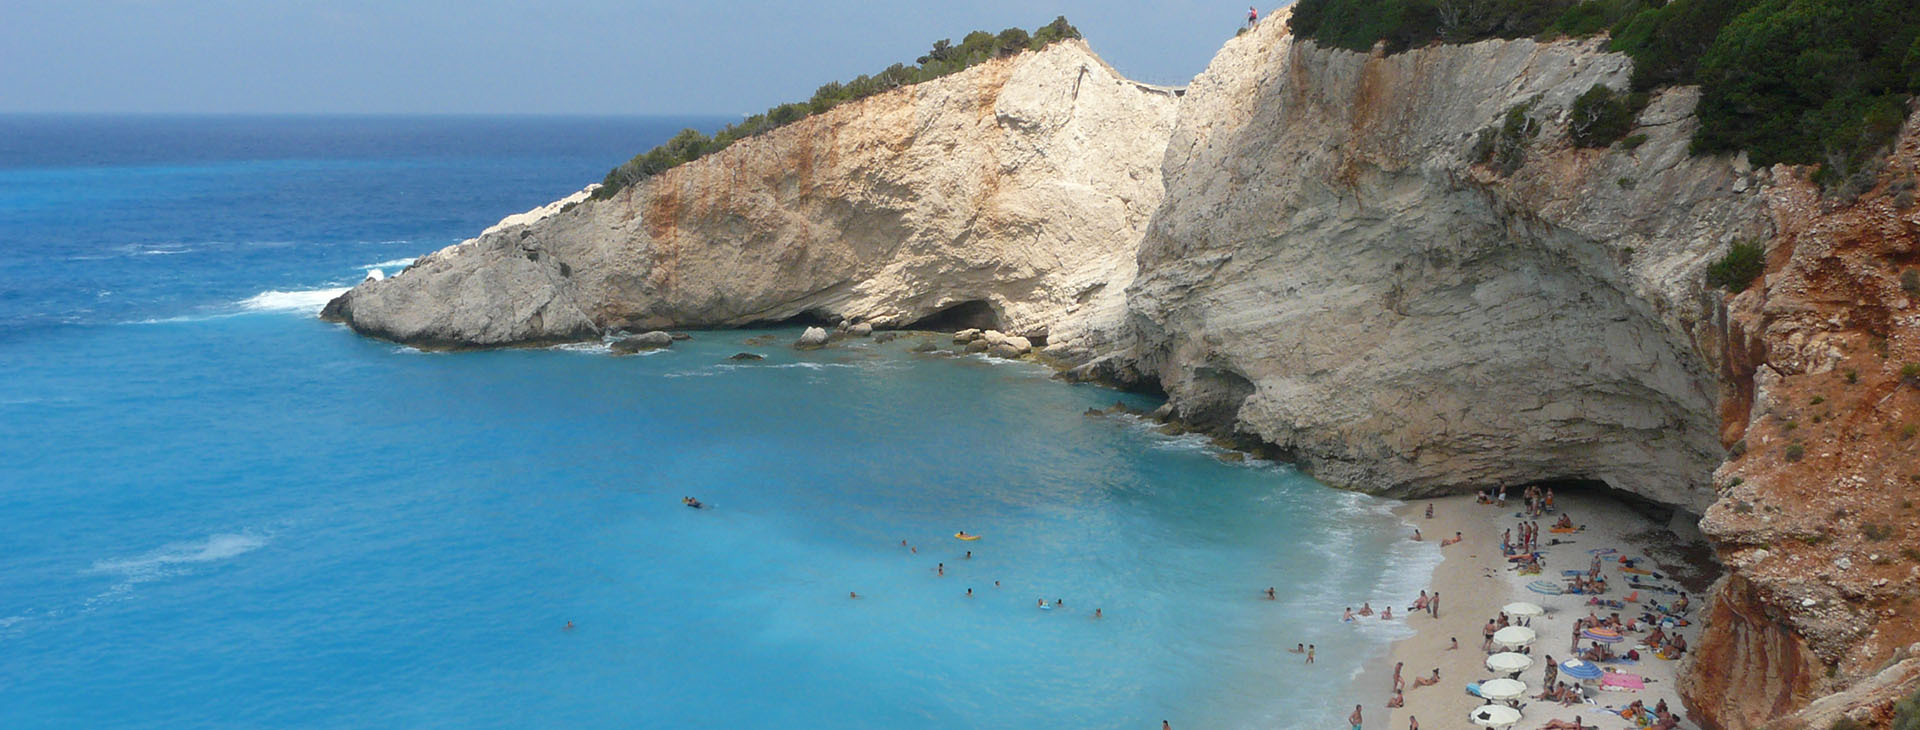 Porto Katsiki beach on Lefkada island